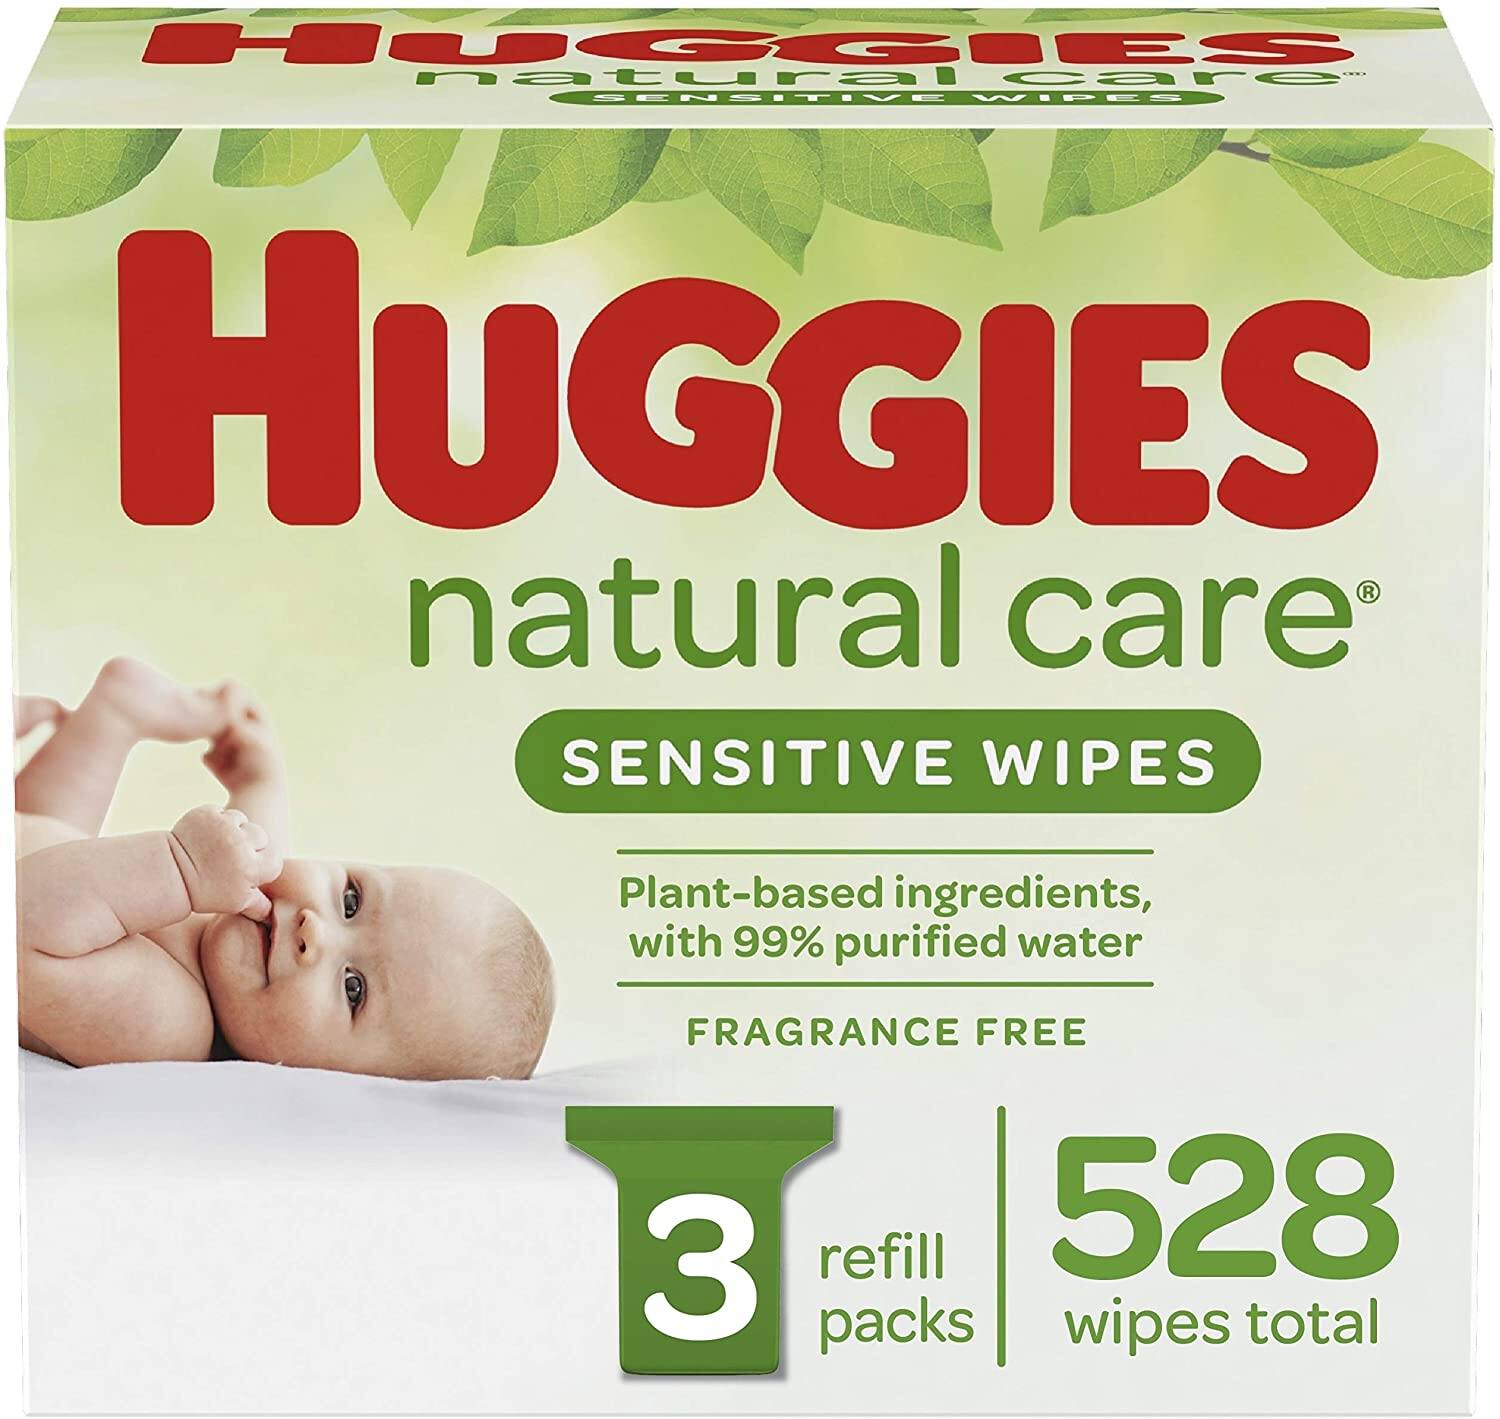 528-Count Huggies Natural Care Sensitive Baby Wipes (Unscented, 3 Refill Packs)